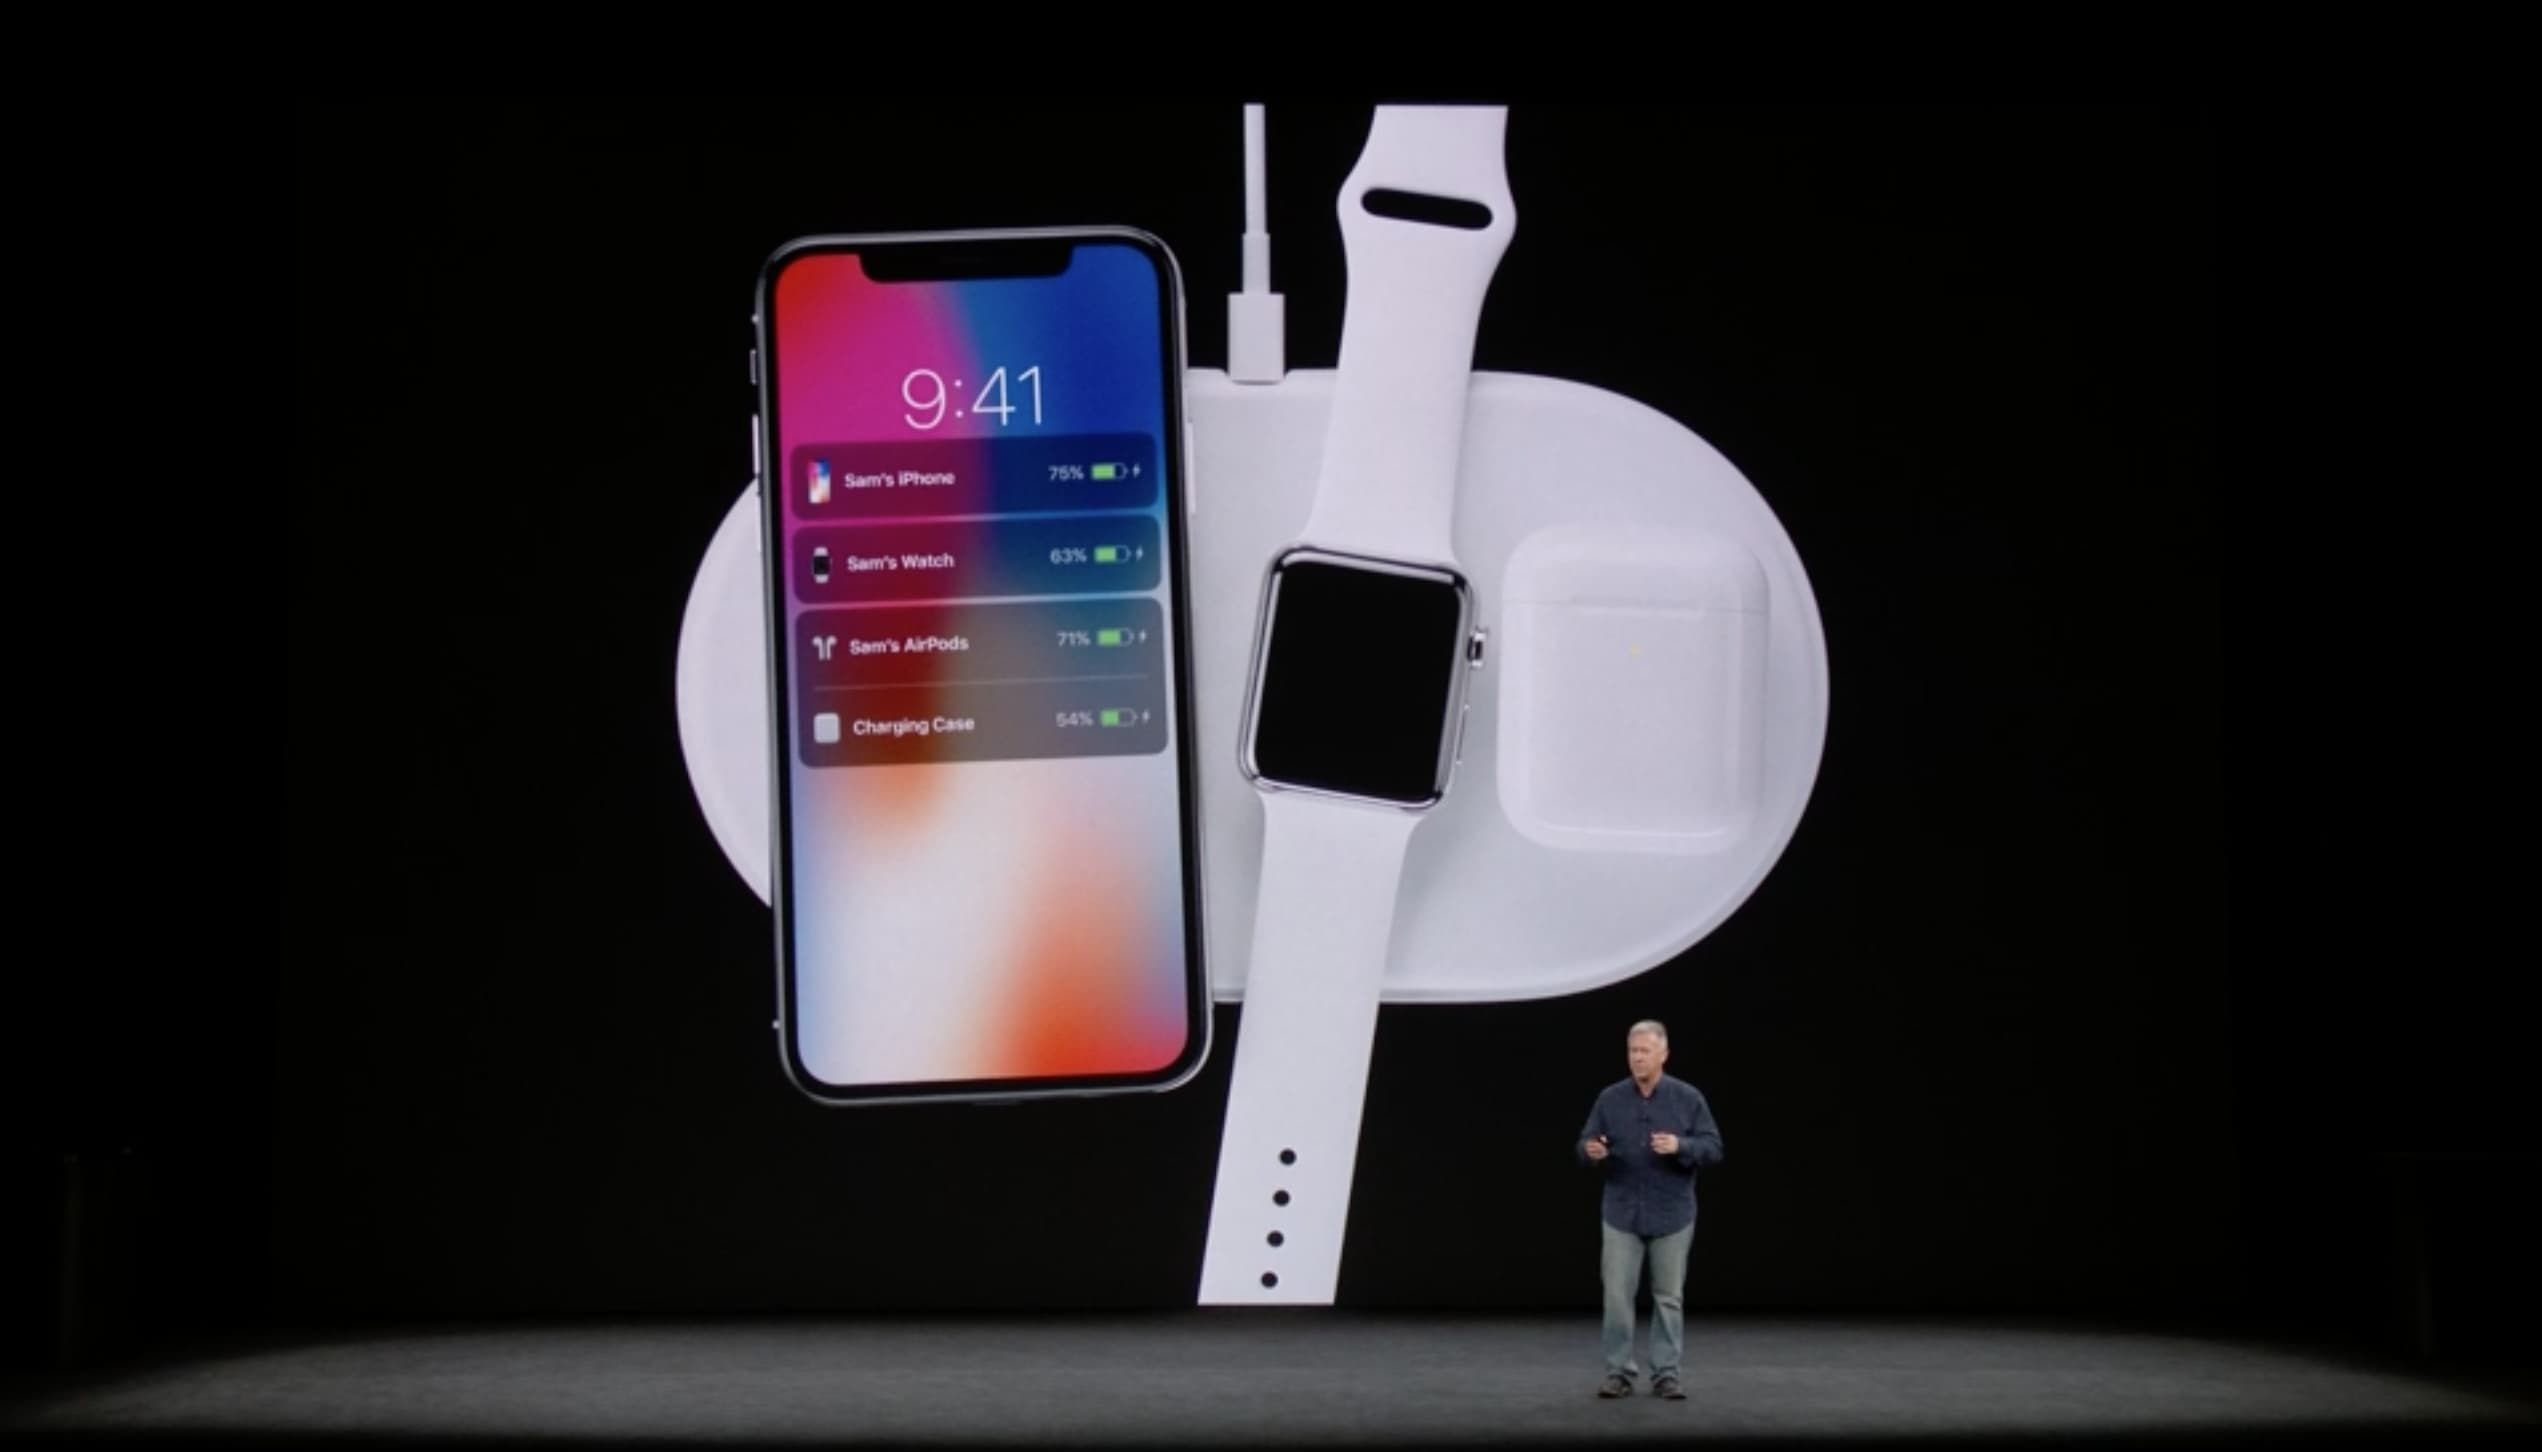 Apple's AirPower wireless charger could be delayed